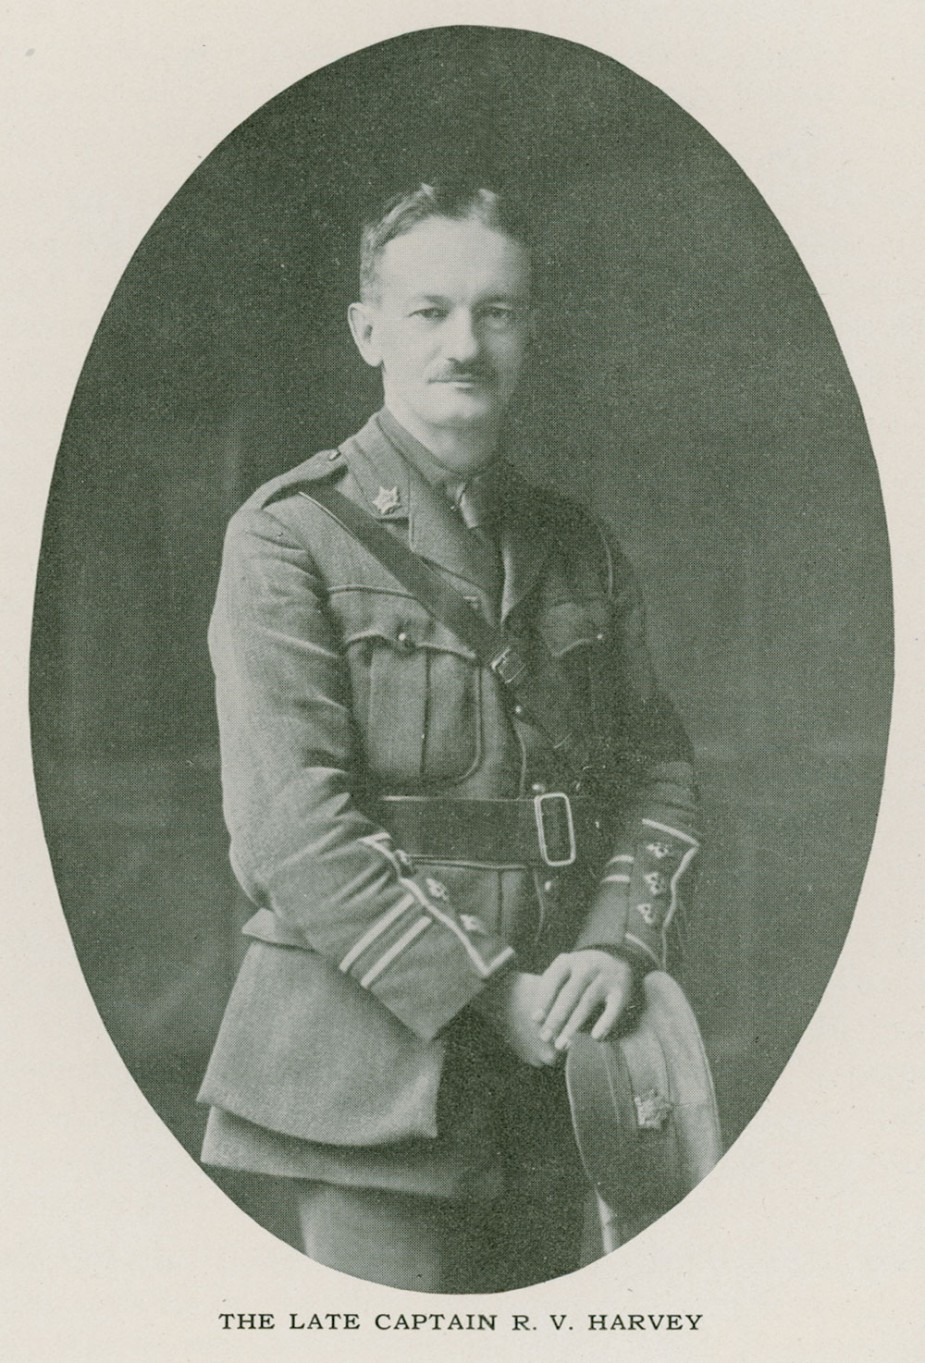 Figure 2. R.V. Harvey (1872-1915). Schoolmaster, entomologist and soldier, started the Entomological Society of BC in 1901. He was a captain in the 7th Battalion, Canadian Expeditionary Force, during World War I and died of wounds suffered in France in April 1915.